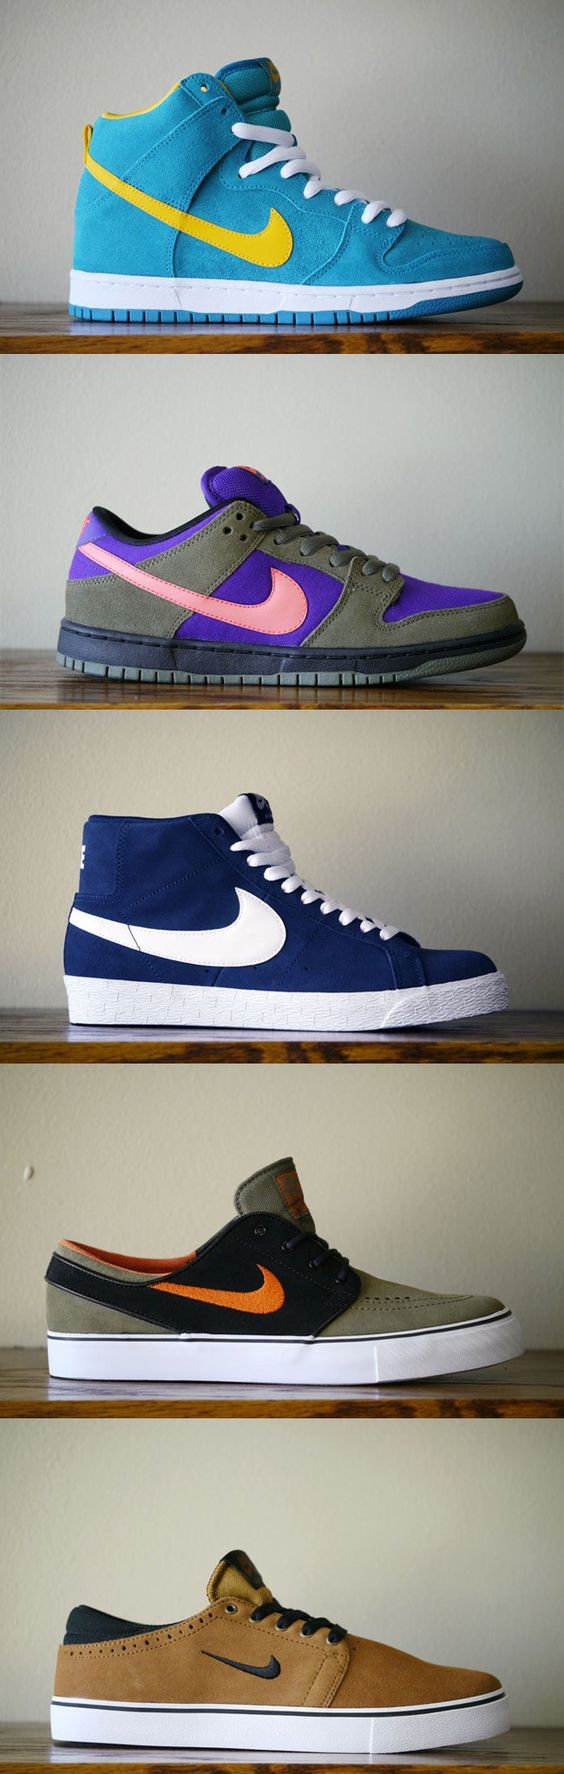 Nike SB August 2013 Sneaker Collection